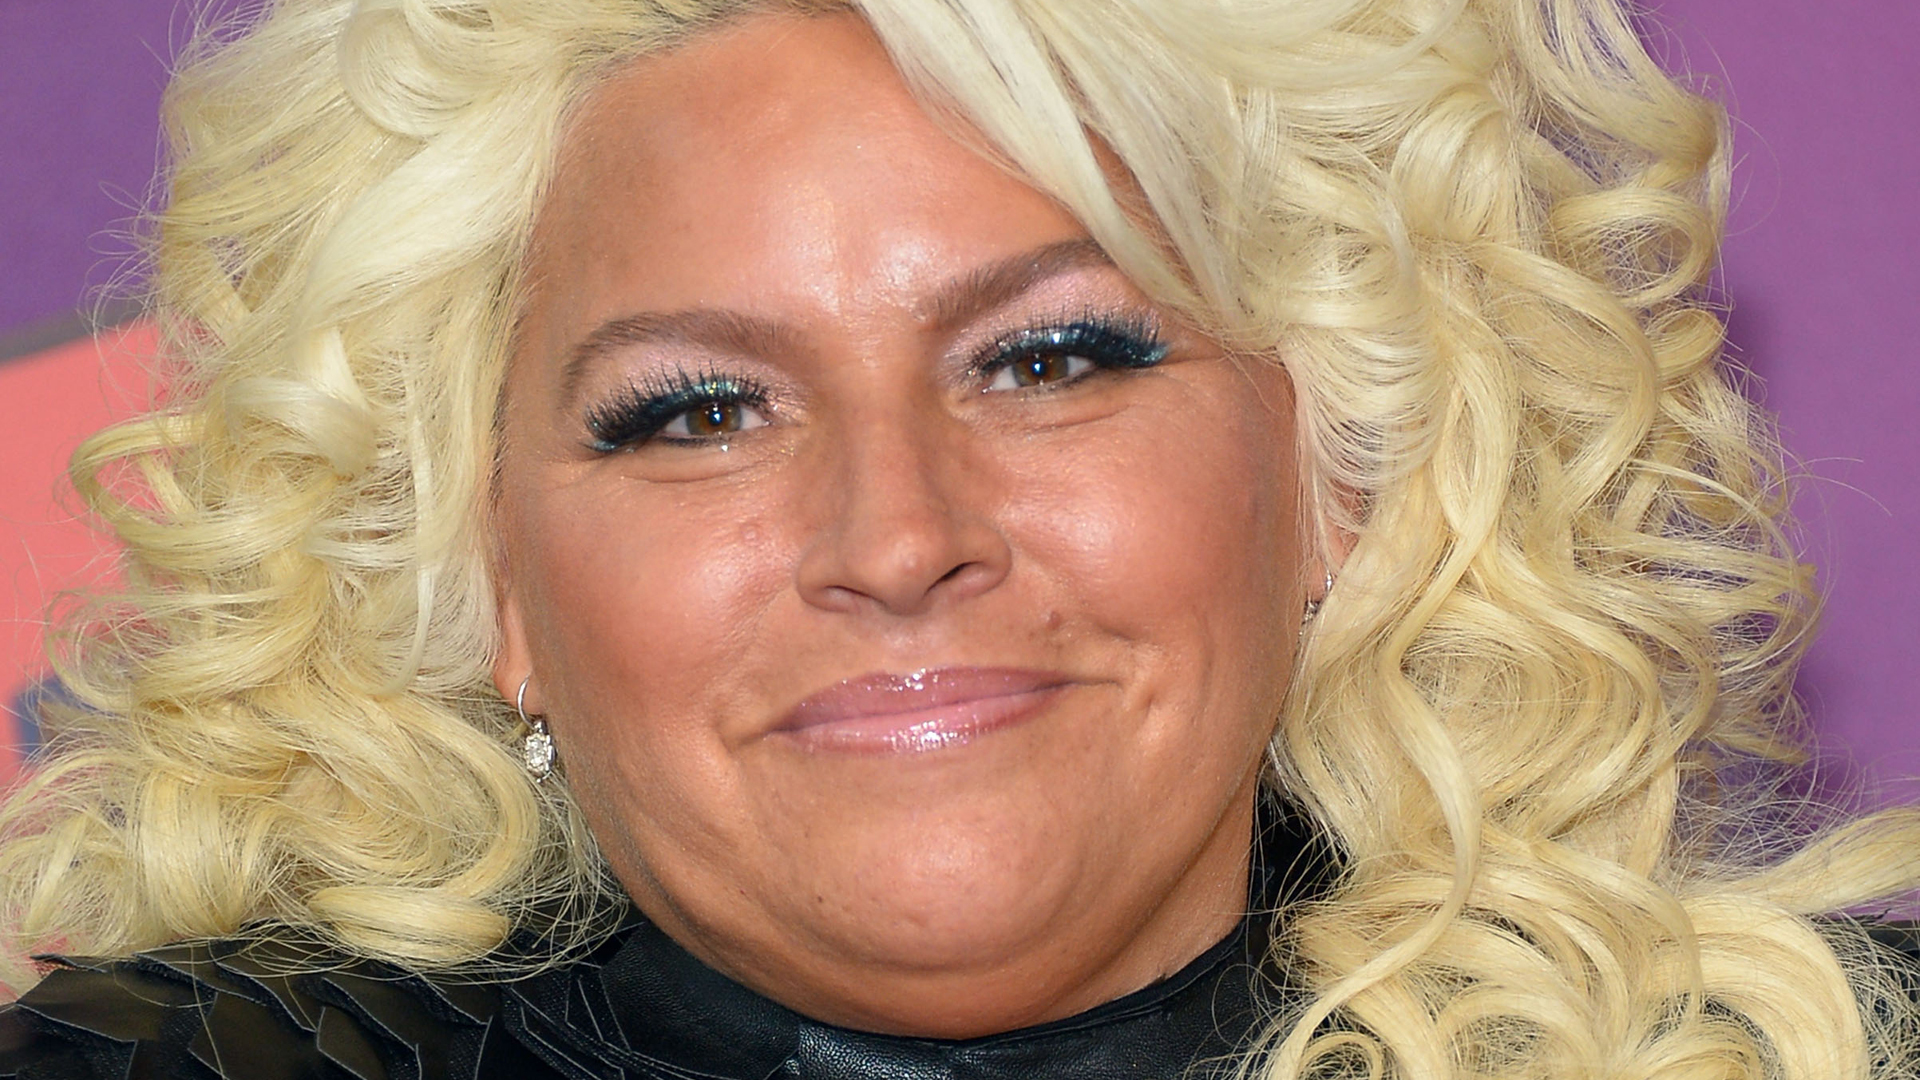 Beth Chapman attends the 2014 CMT Music awards at the Bridgestone Arena on June 4, 2014 in Nashville, Tennessee. (Credit: Michael Loccisano/Getty Images)